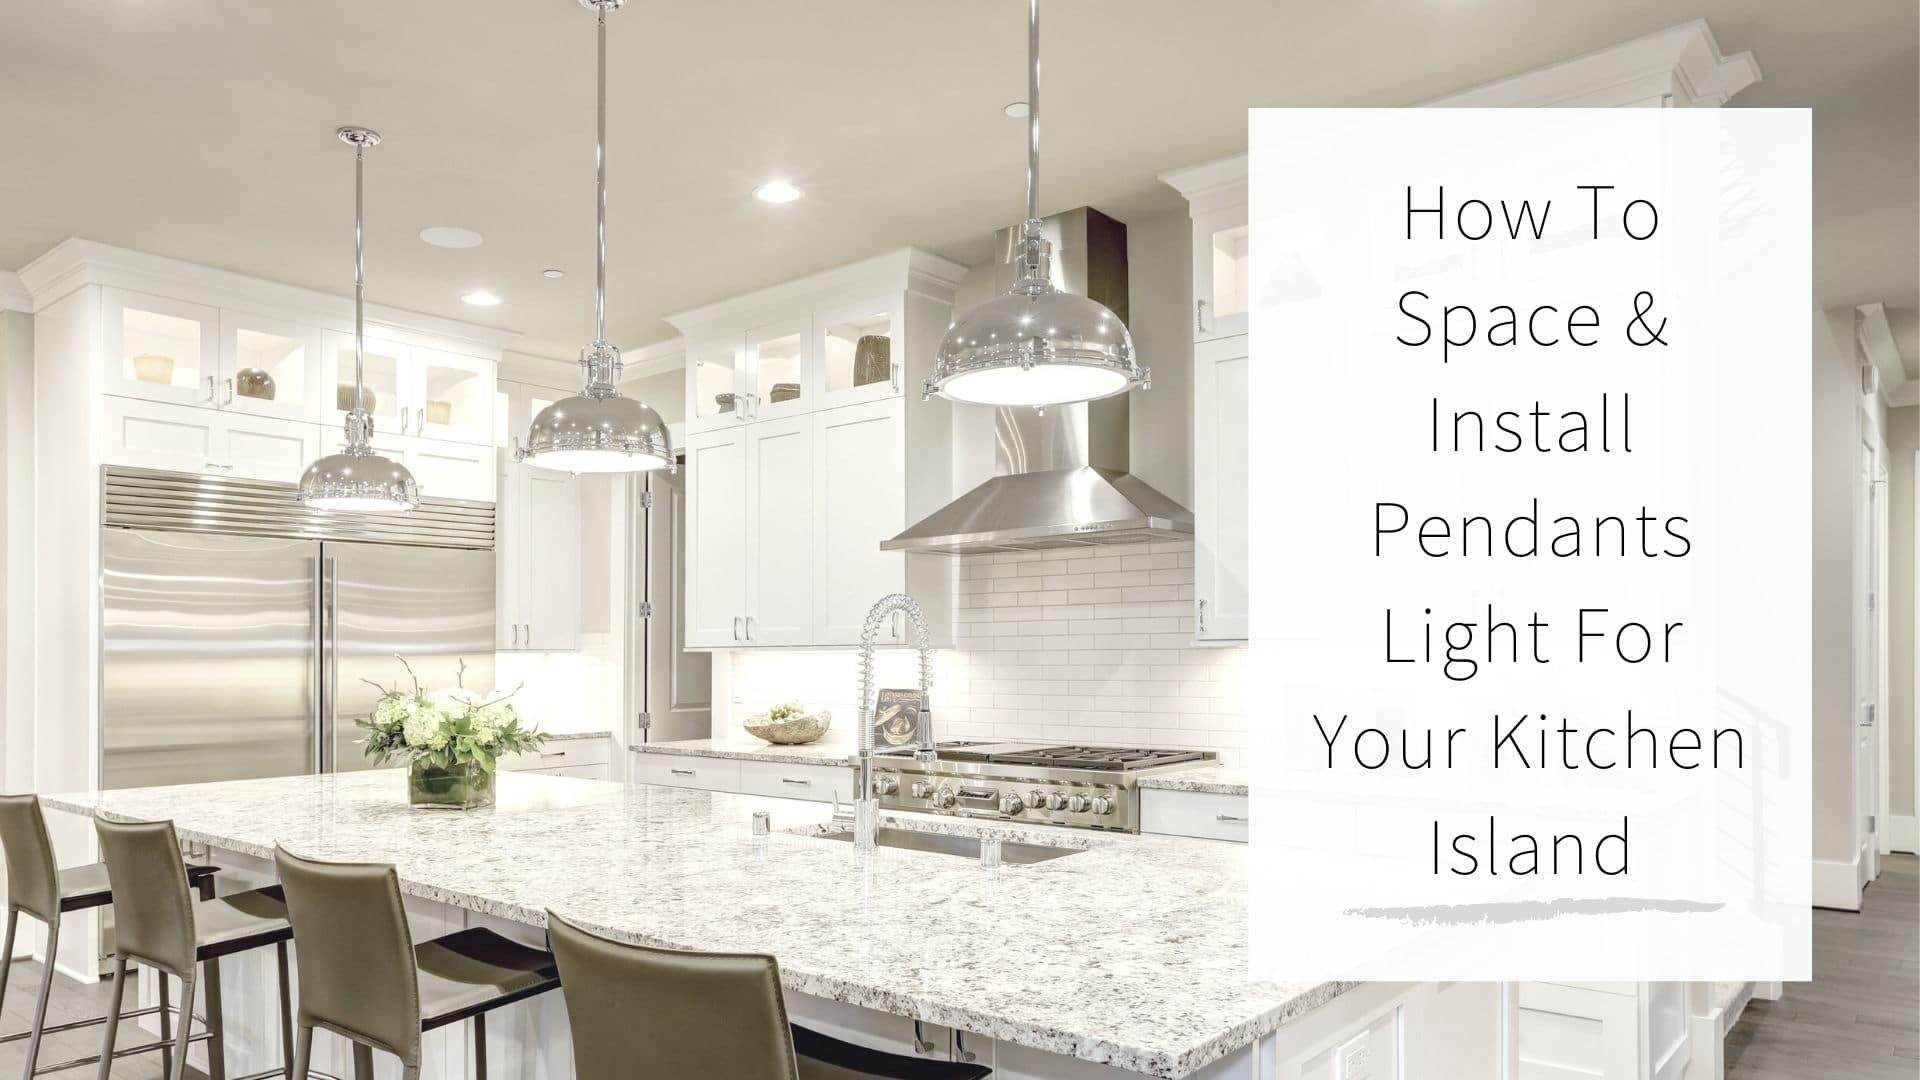 How To Space Install Pendant Lights Over Your Kitchen Island